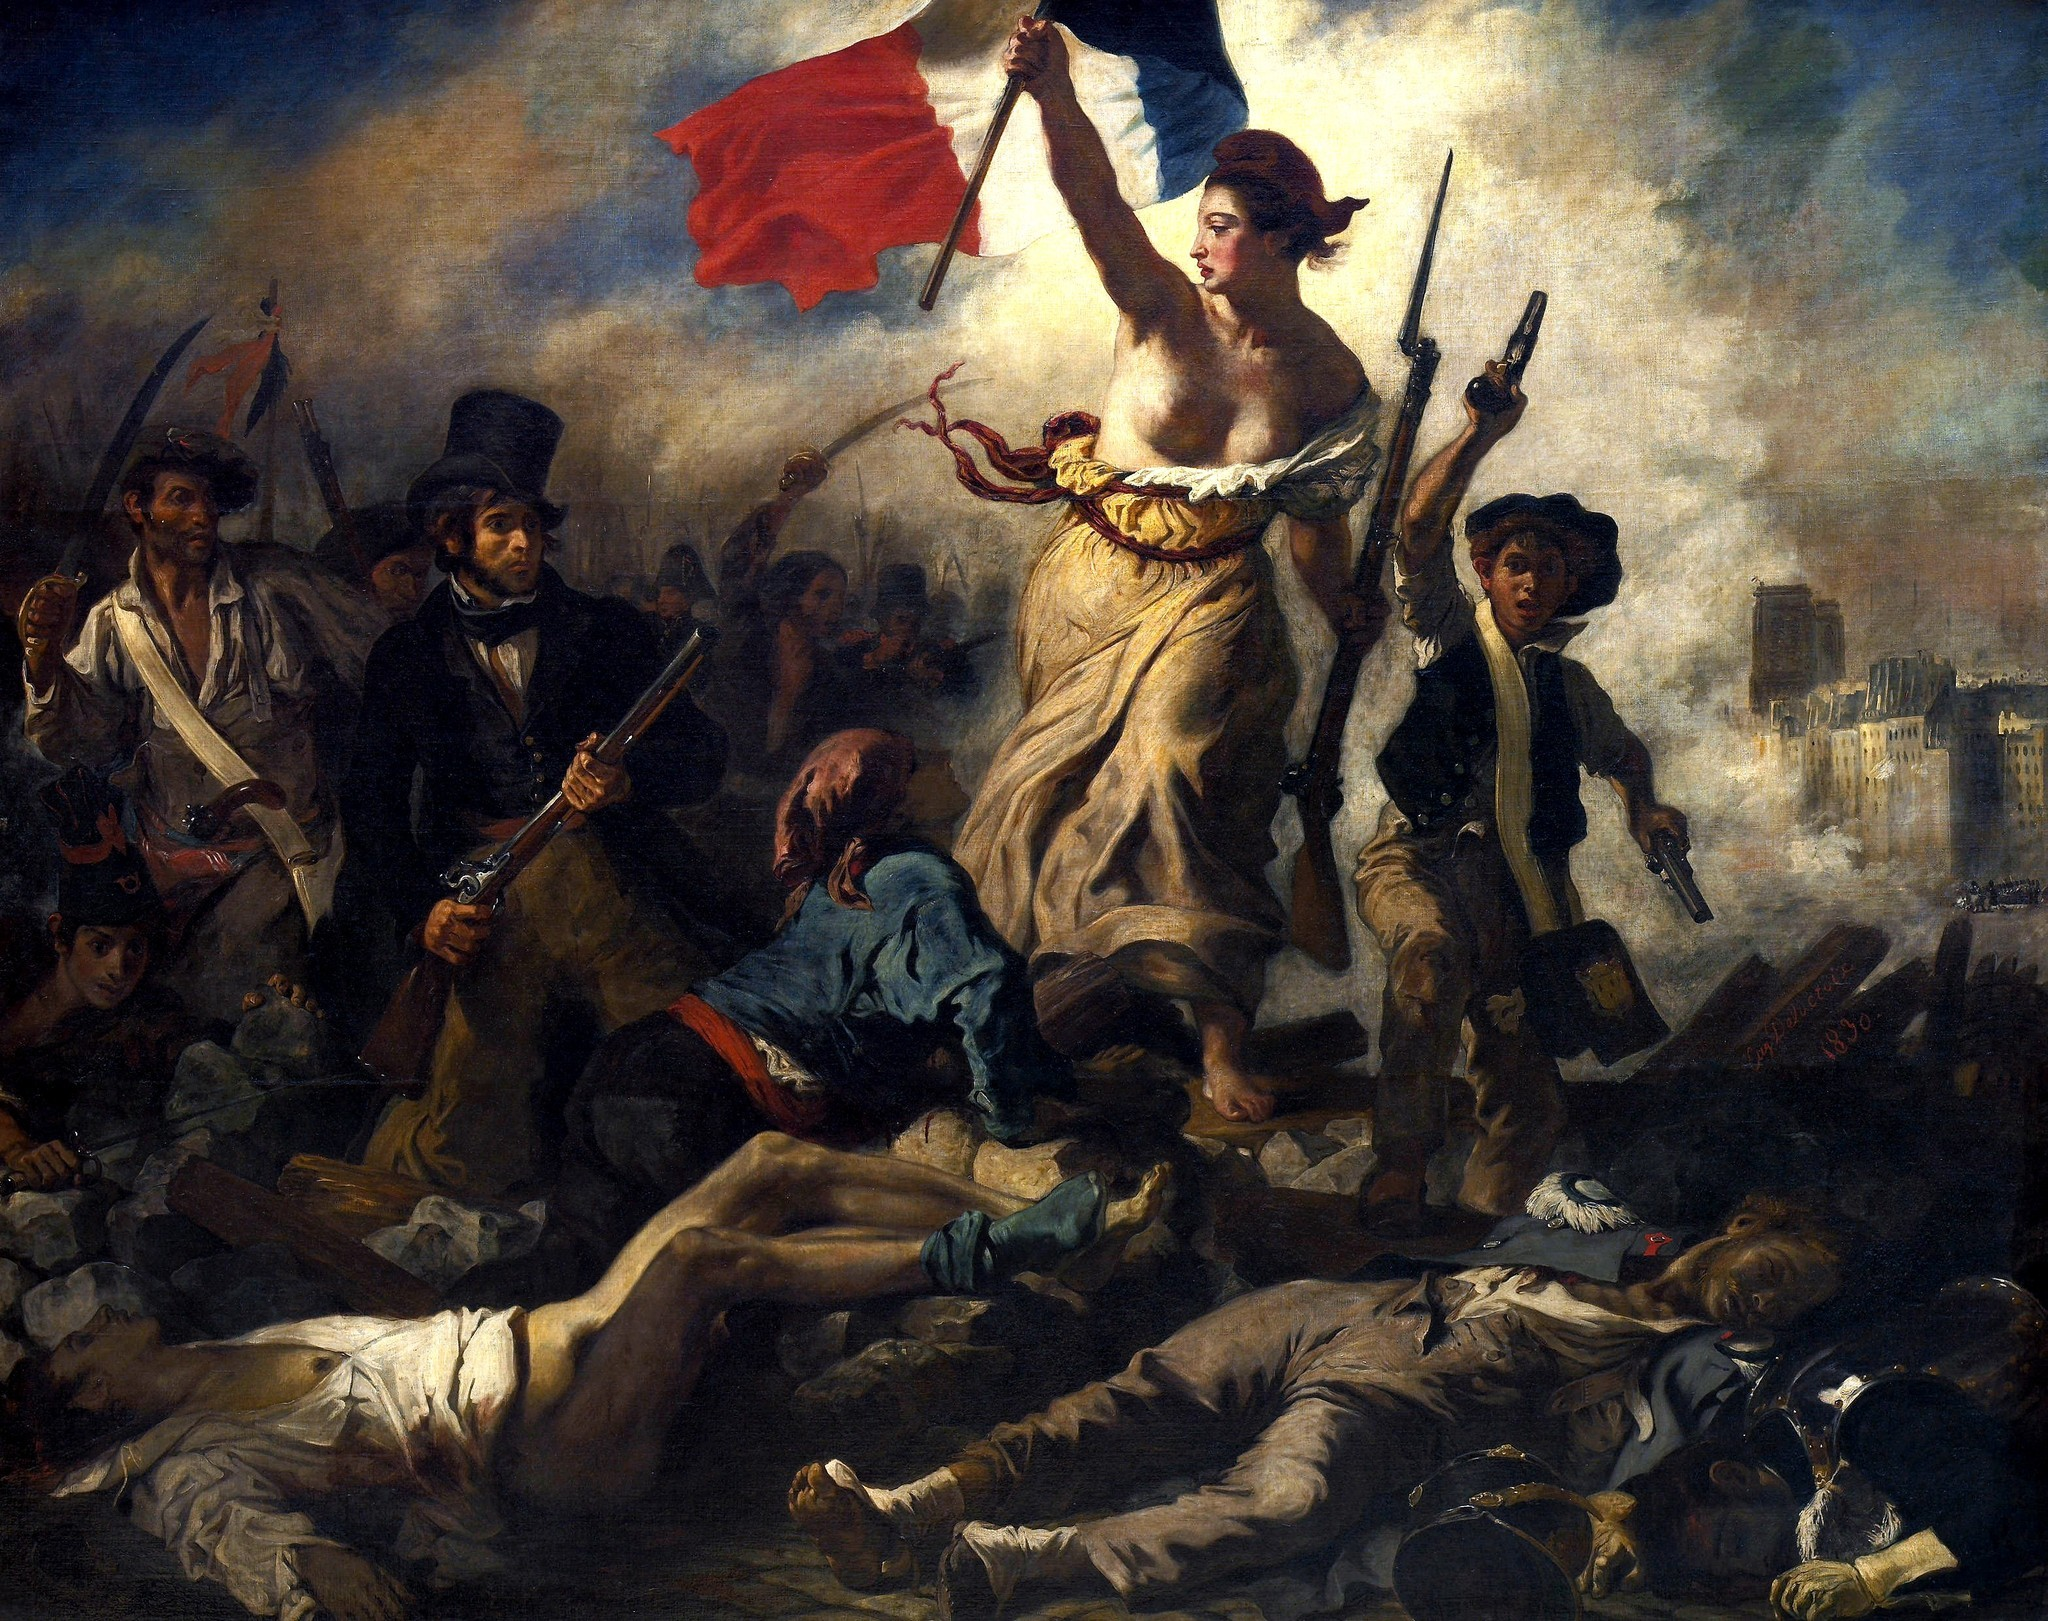 the different factors that contributed to the french revolution What economic factors contributed to the french revolution france's tax system, the cost of foreign wars and the personal court expenditures of louis xvi were all important contributing factors to the french revolution.